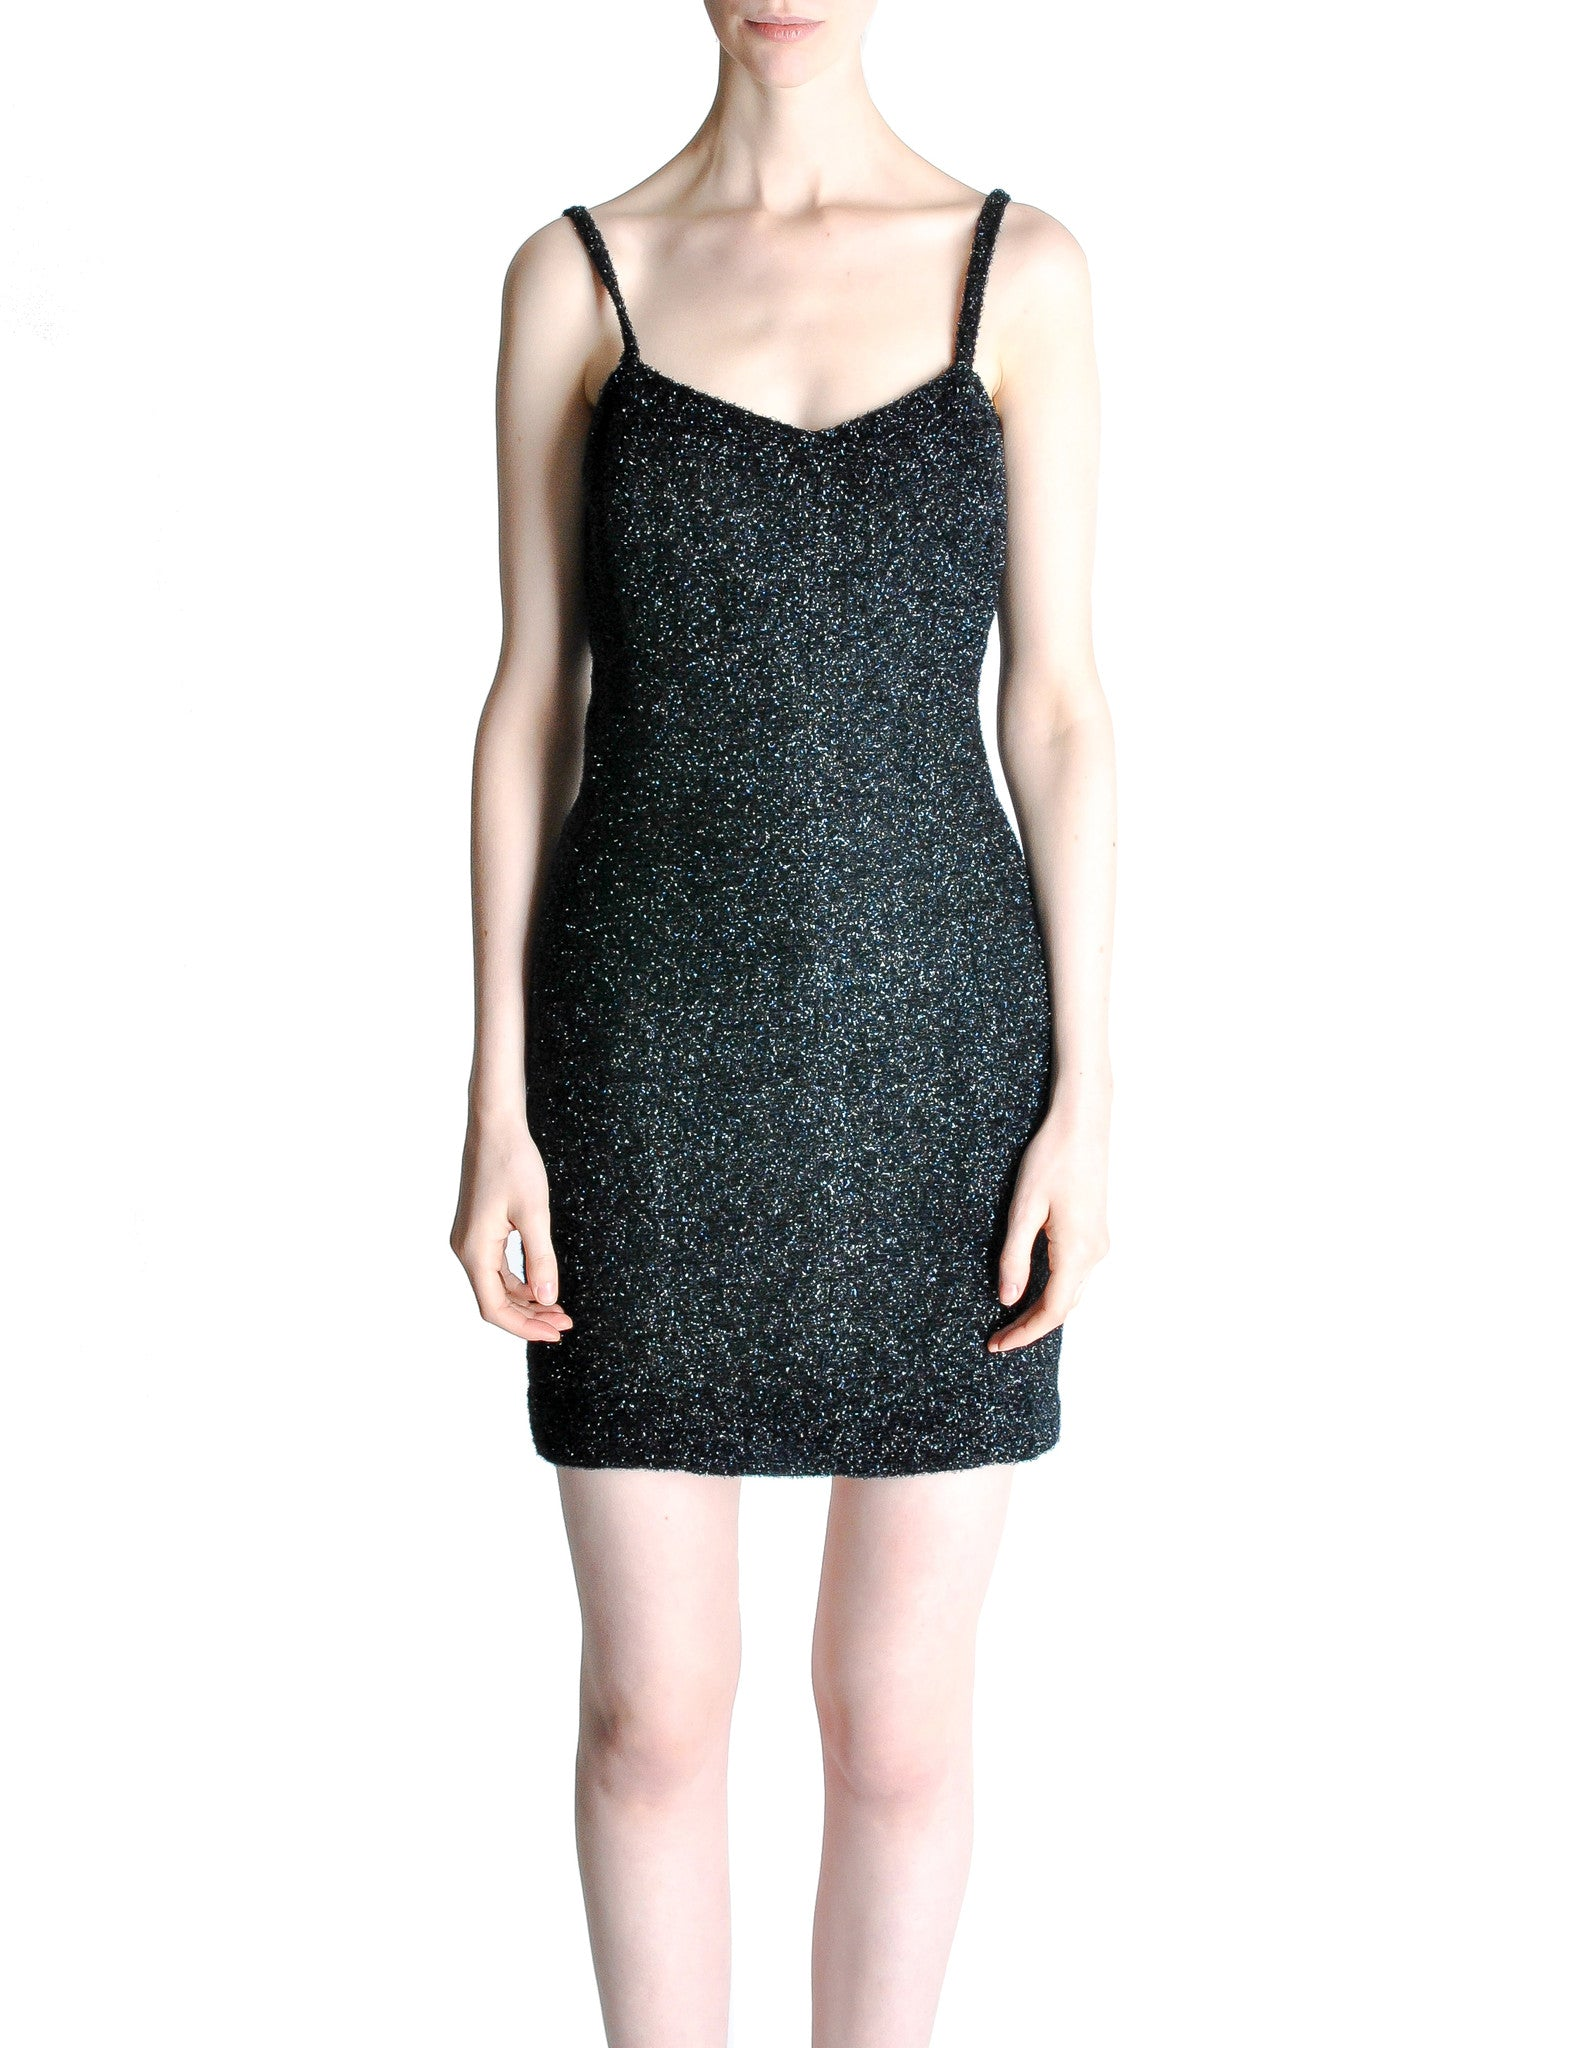 Emporio Armani Vintage Little Black Dress - Amarcord Vintage Fashion  - 1